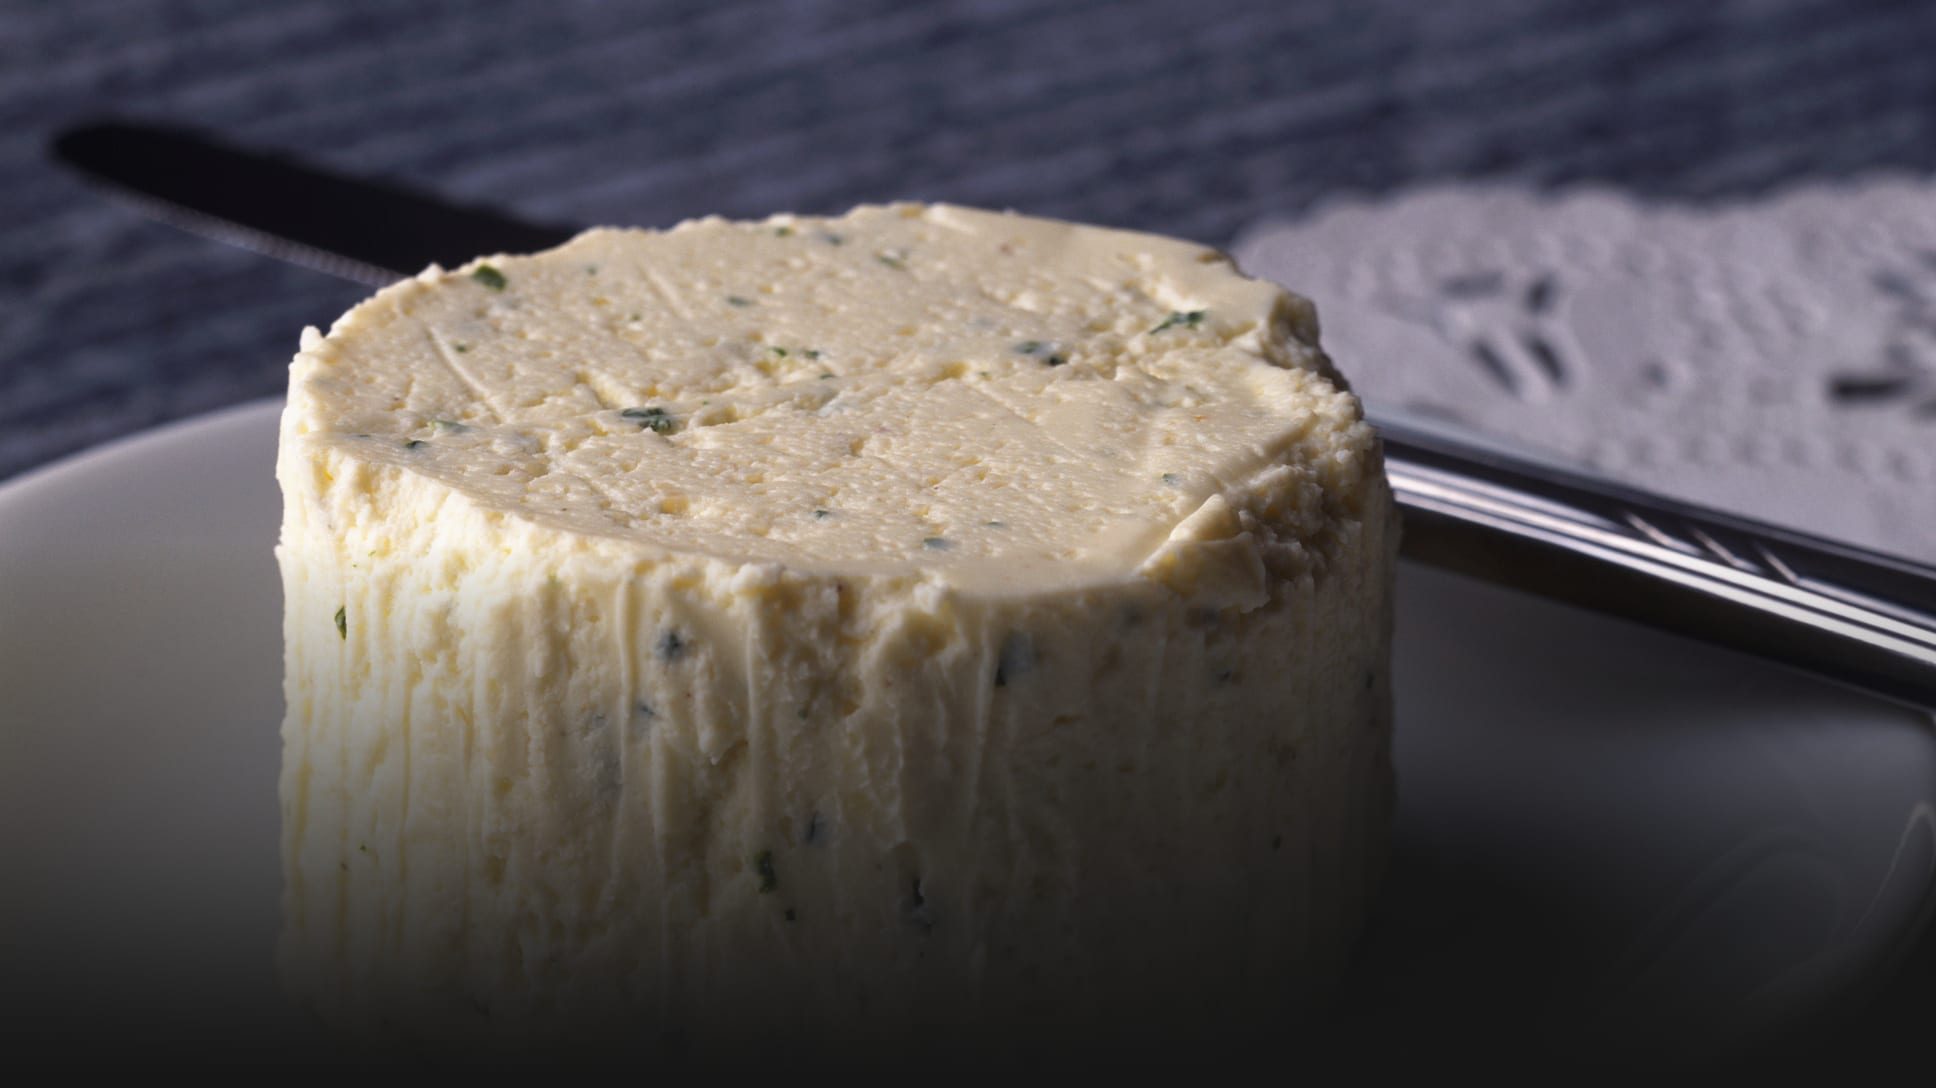 Why Boursin Should Be on the Mount Rushmore of Cheeses